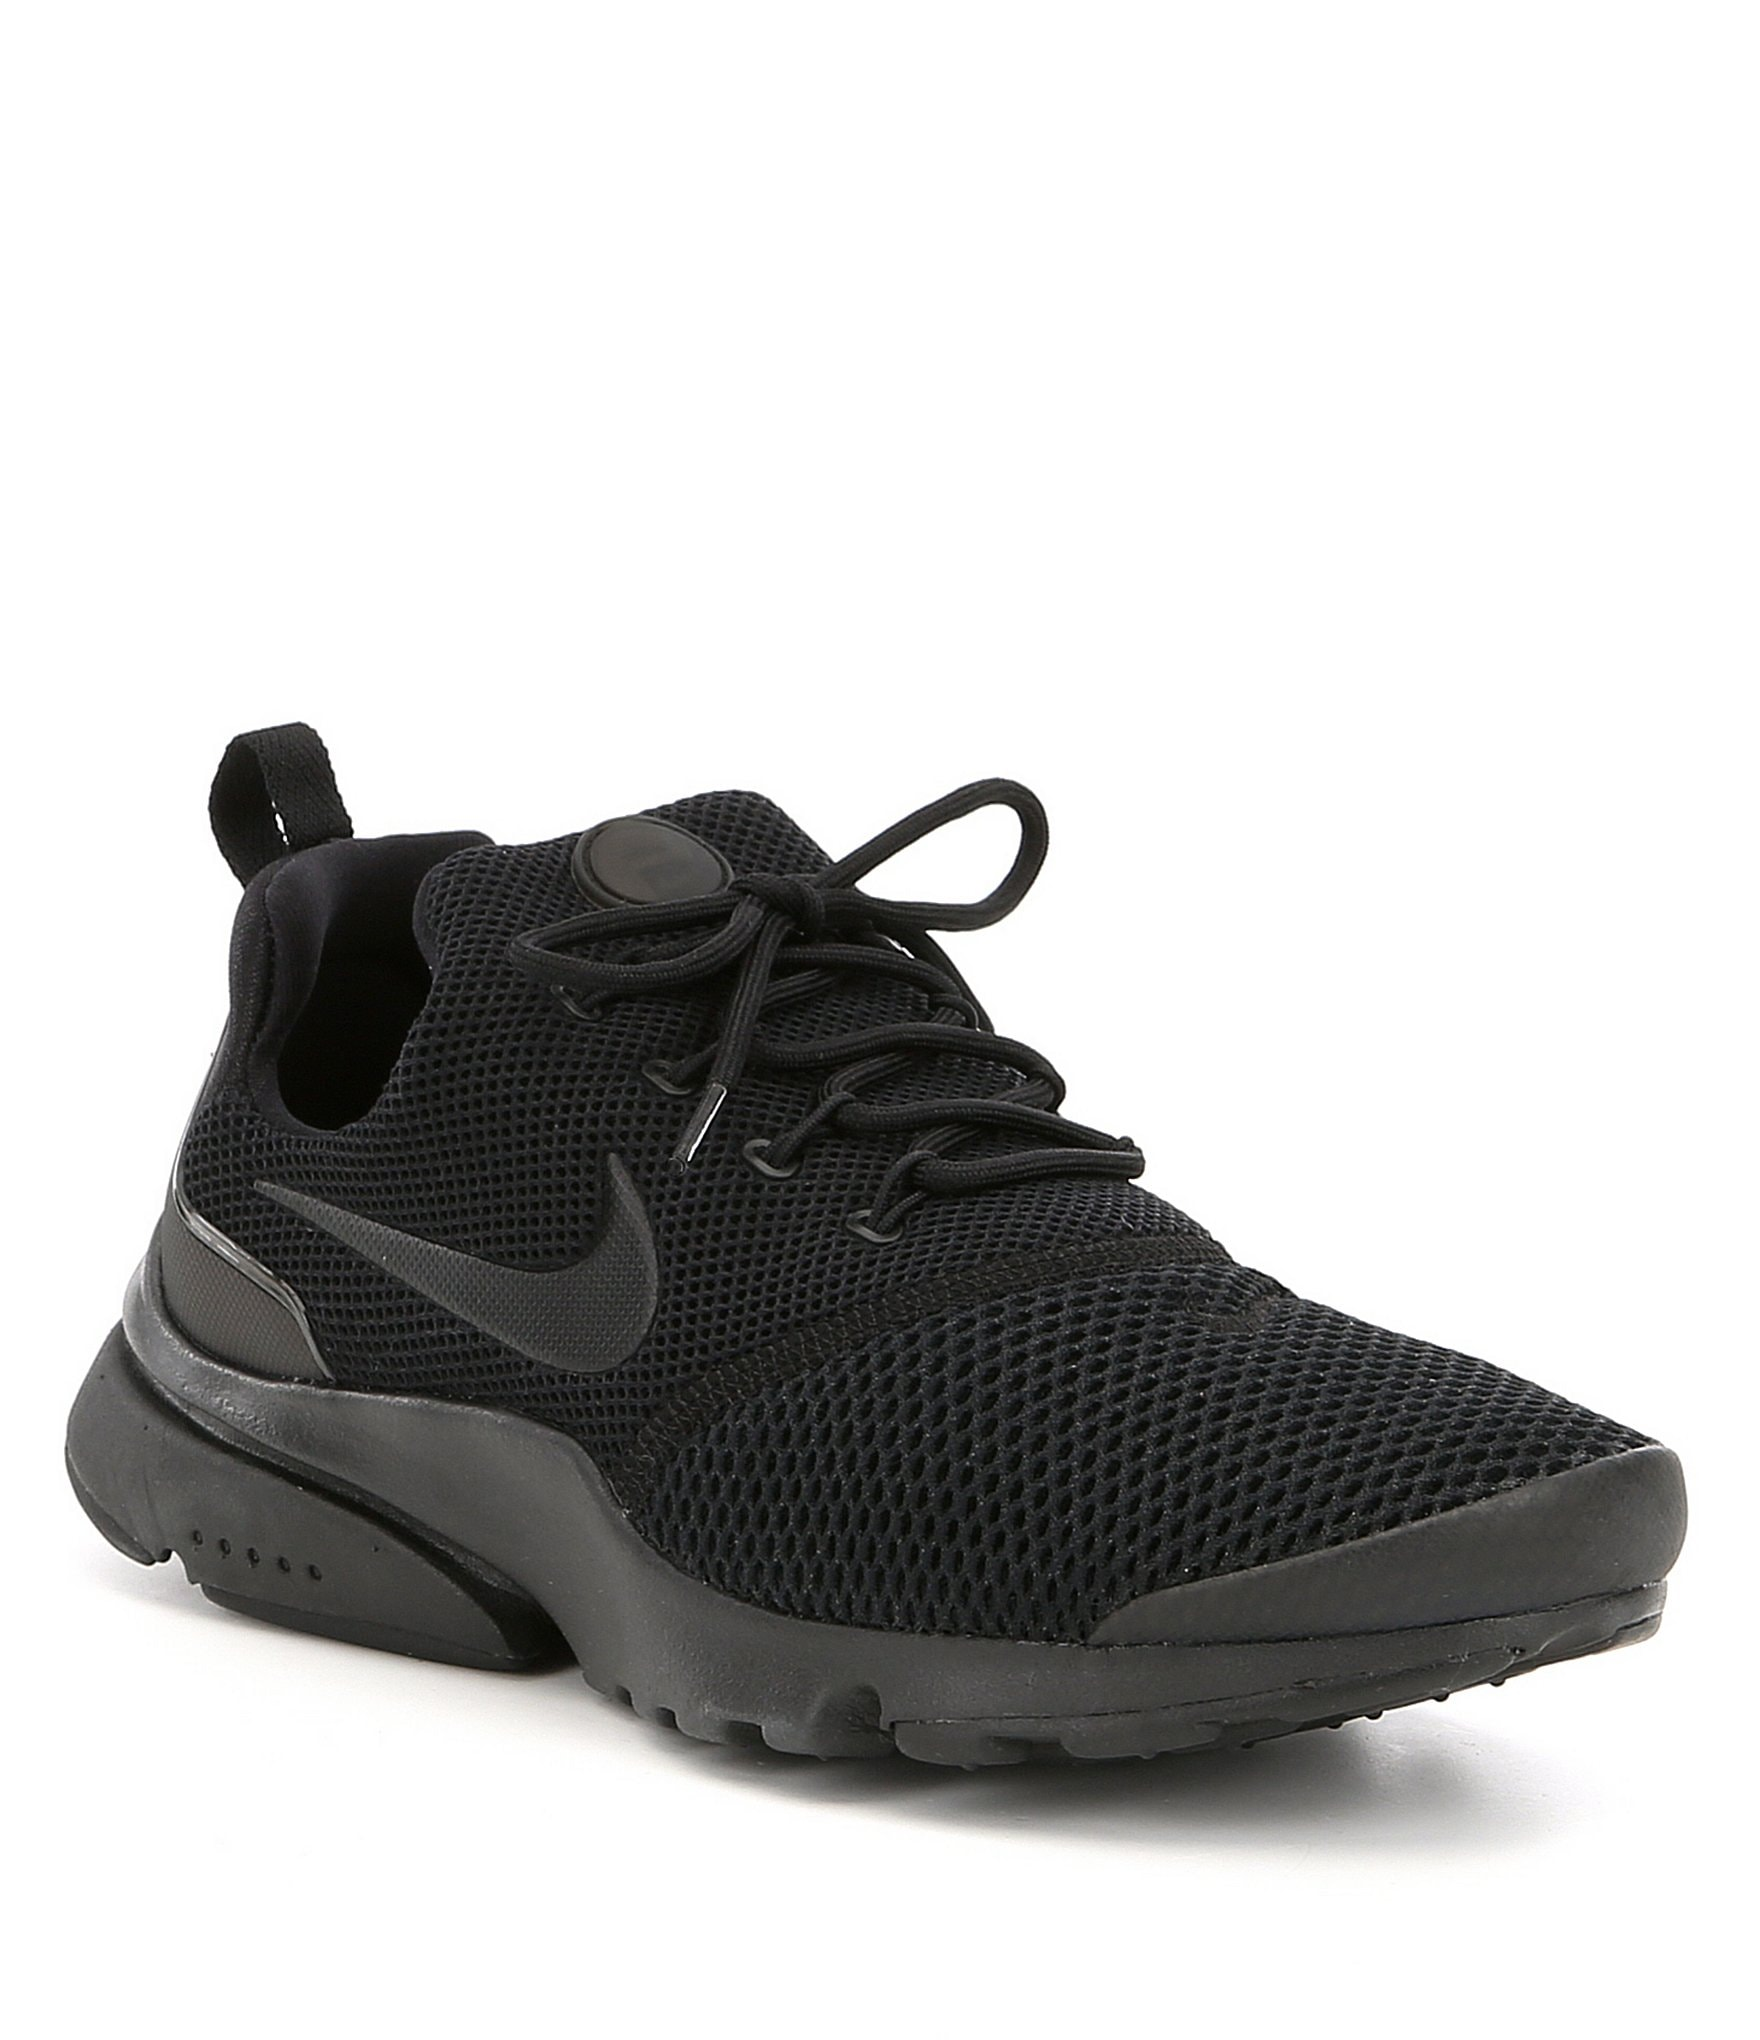 Nike Women S Presto Fly Lifestyle Shoes Dillards